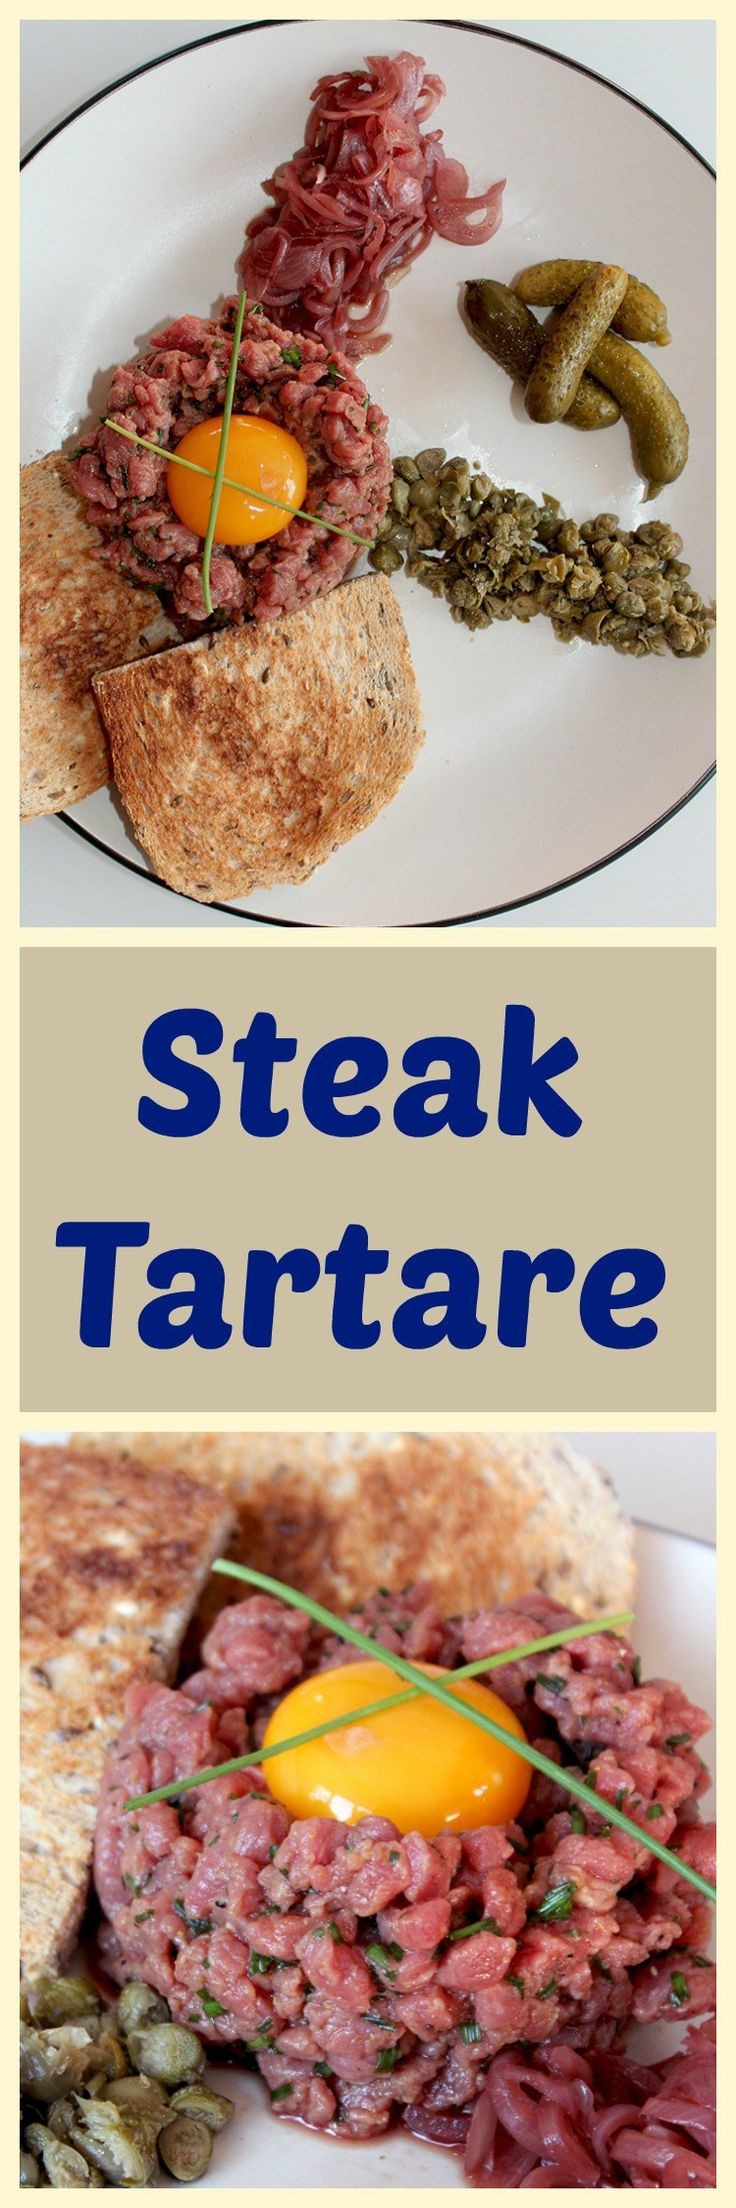 I want to try this steak tartare with pickled shallots! Looks delicious as a light lunch or elegant gourmet appetizer.